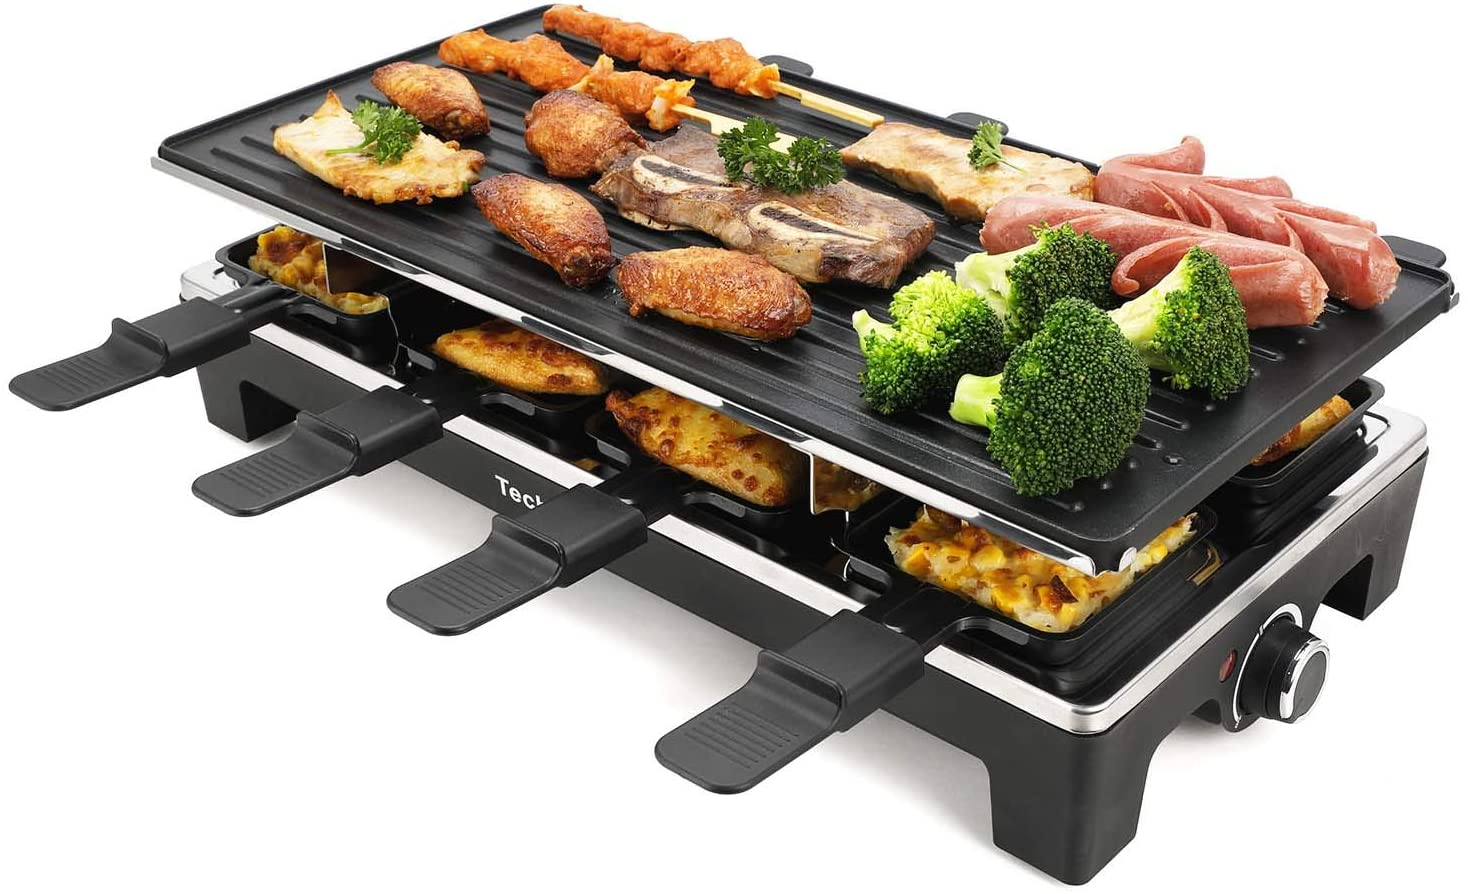 techwood smokeless grill with High Density Granite Grill Stone